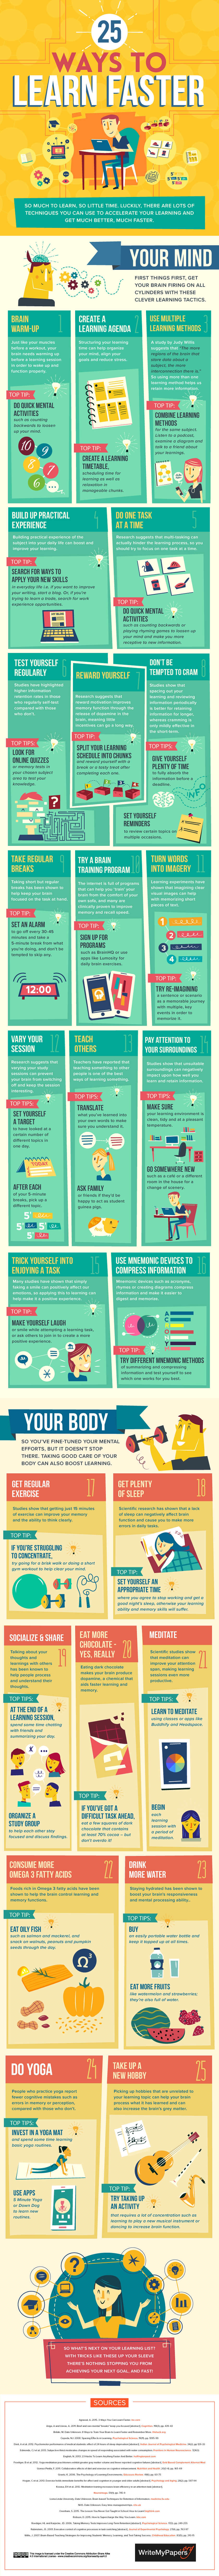 25 ways to learn faster - infographic